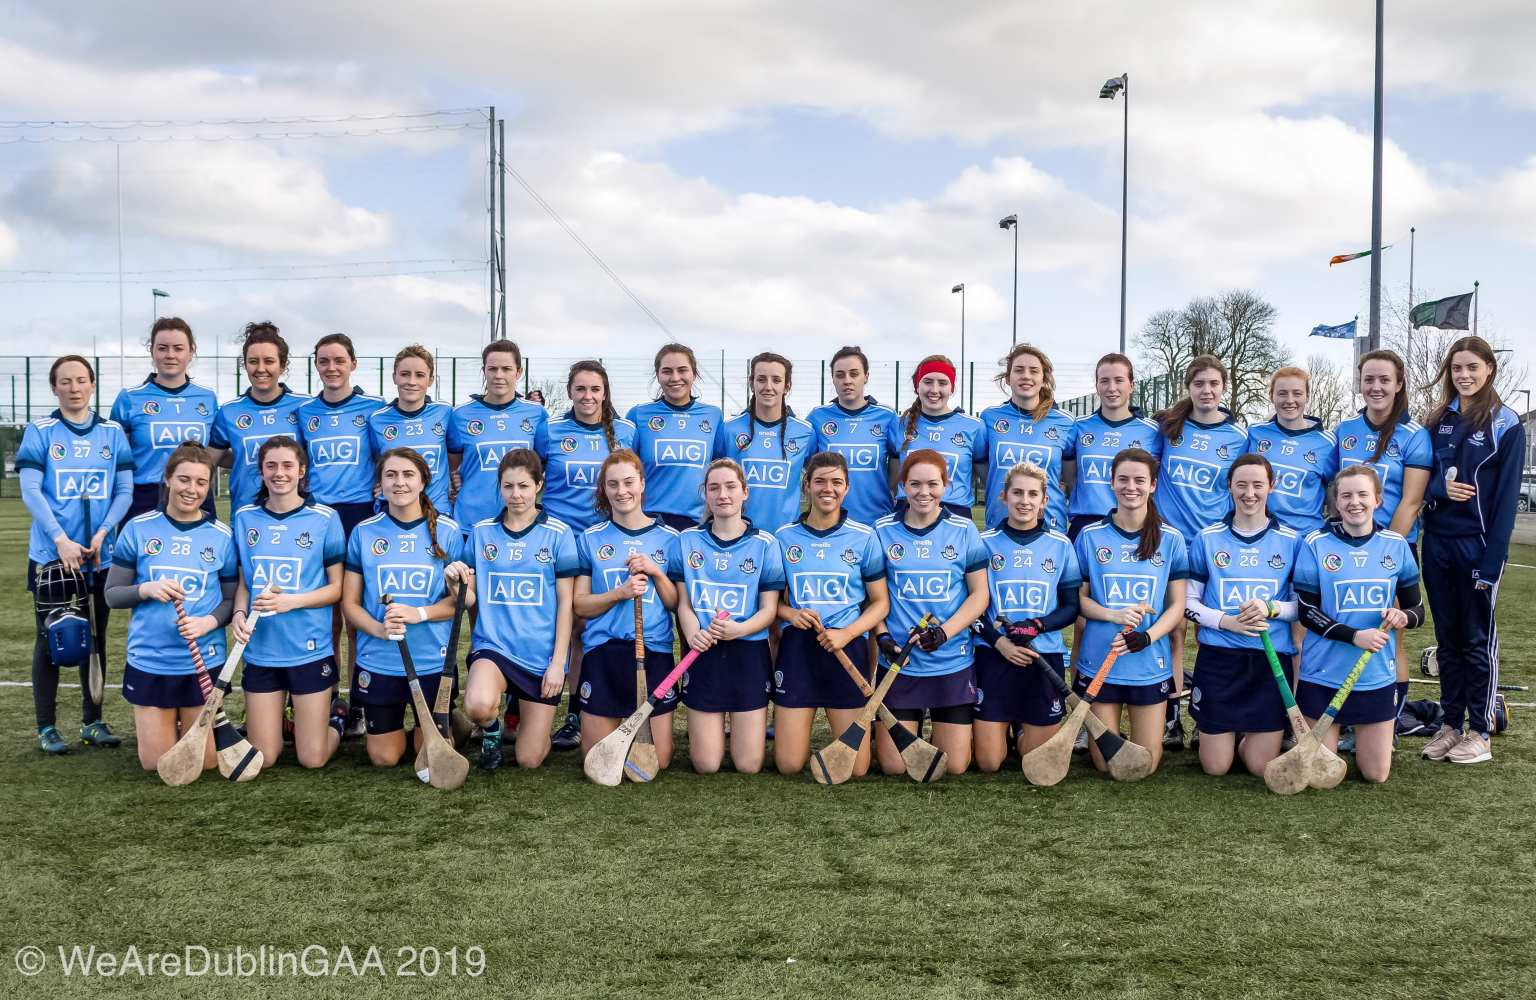 Dublin Senior Camogie Squad who start their 2019 All Ireland Campaign against Meath